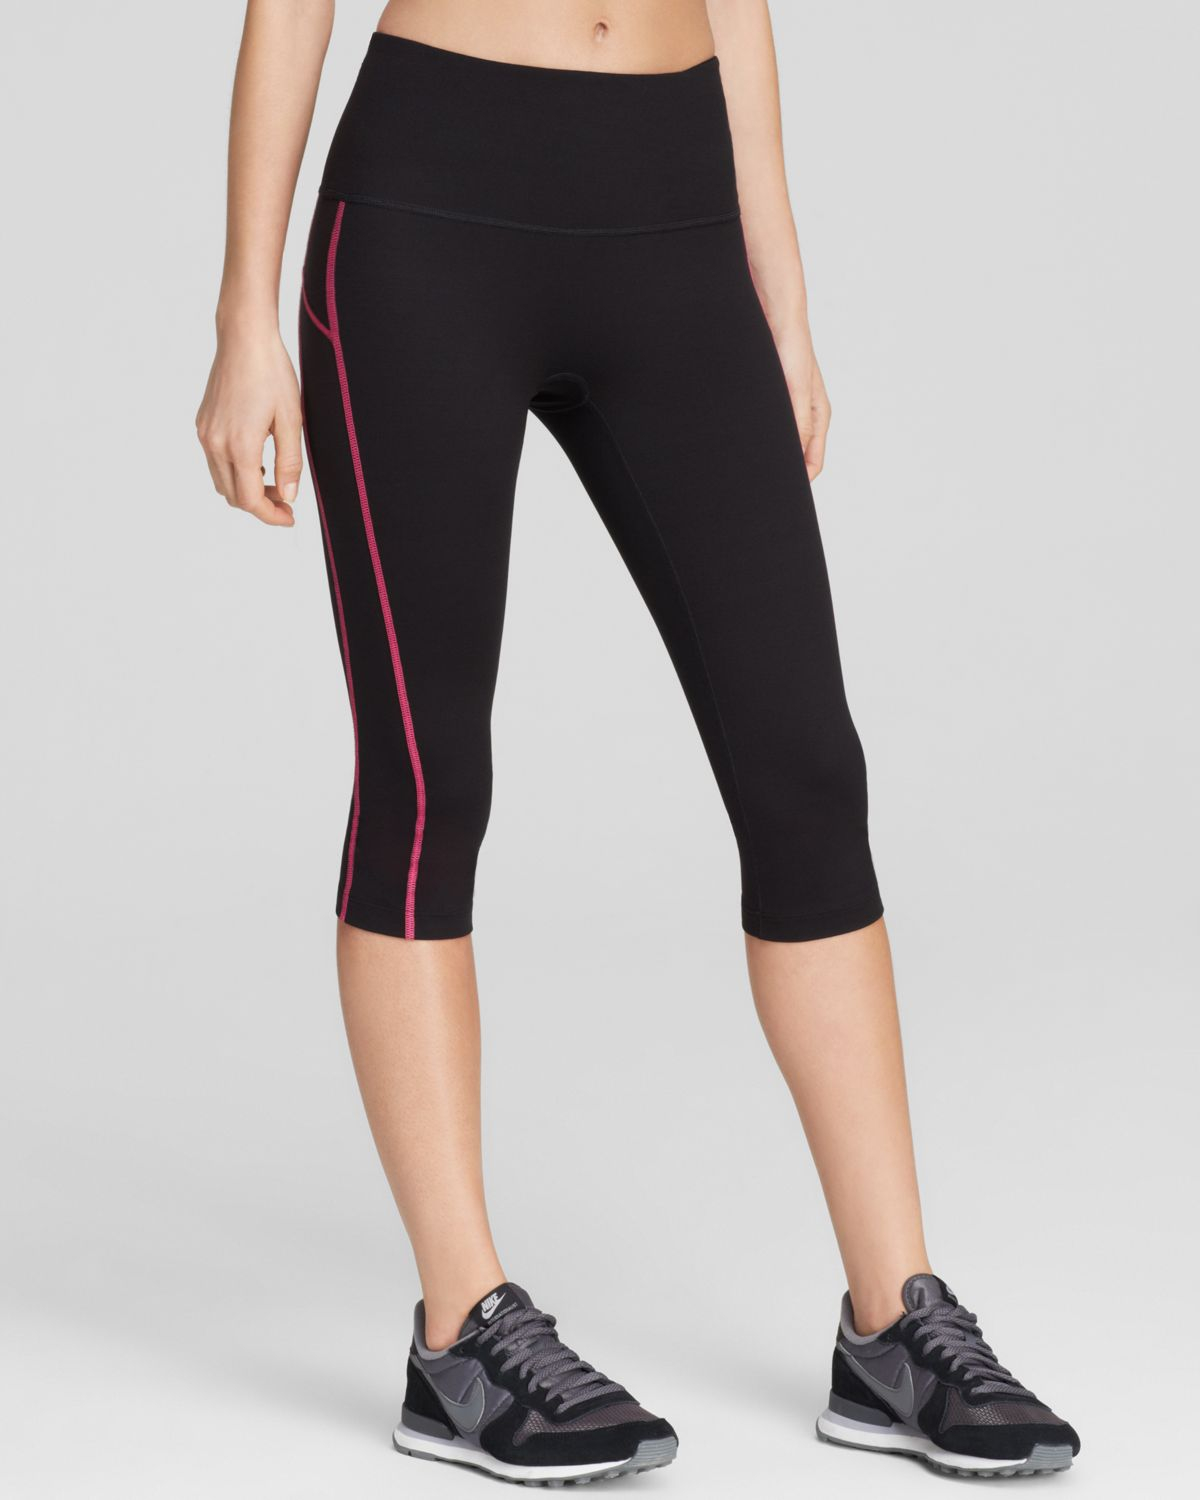 Spanx Spanx 174 Active Compression Contrast Stitch Knee Pants In Black Lyst